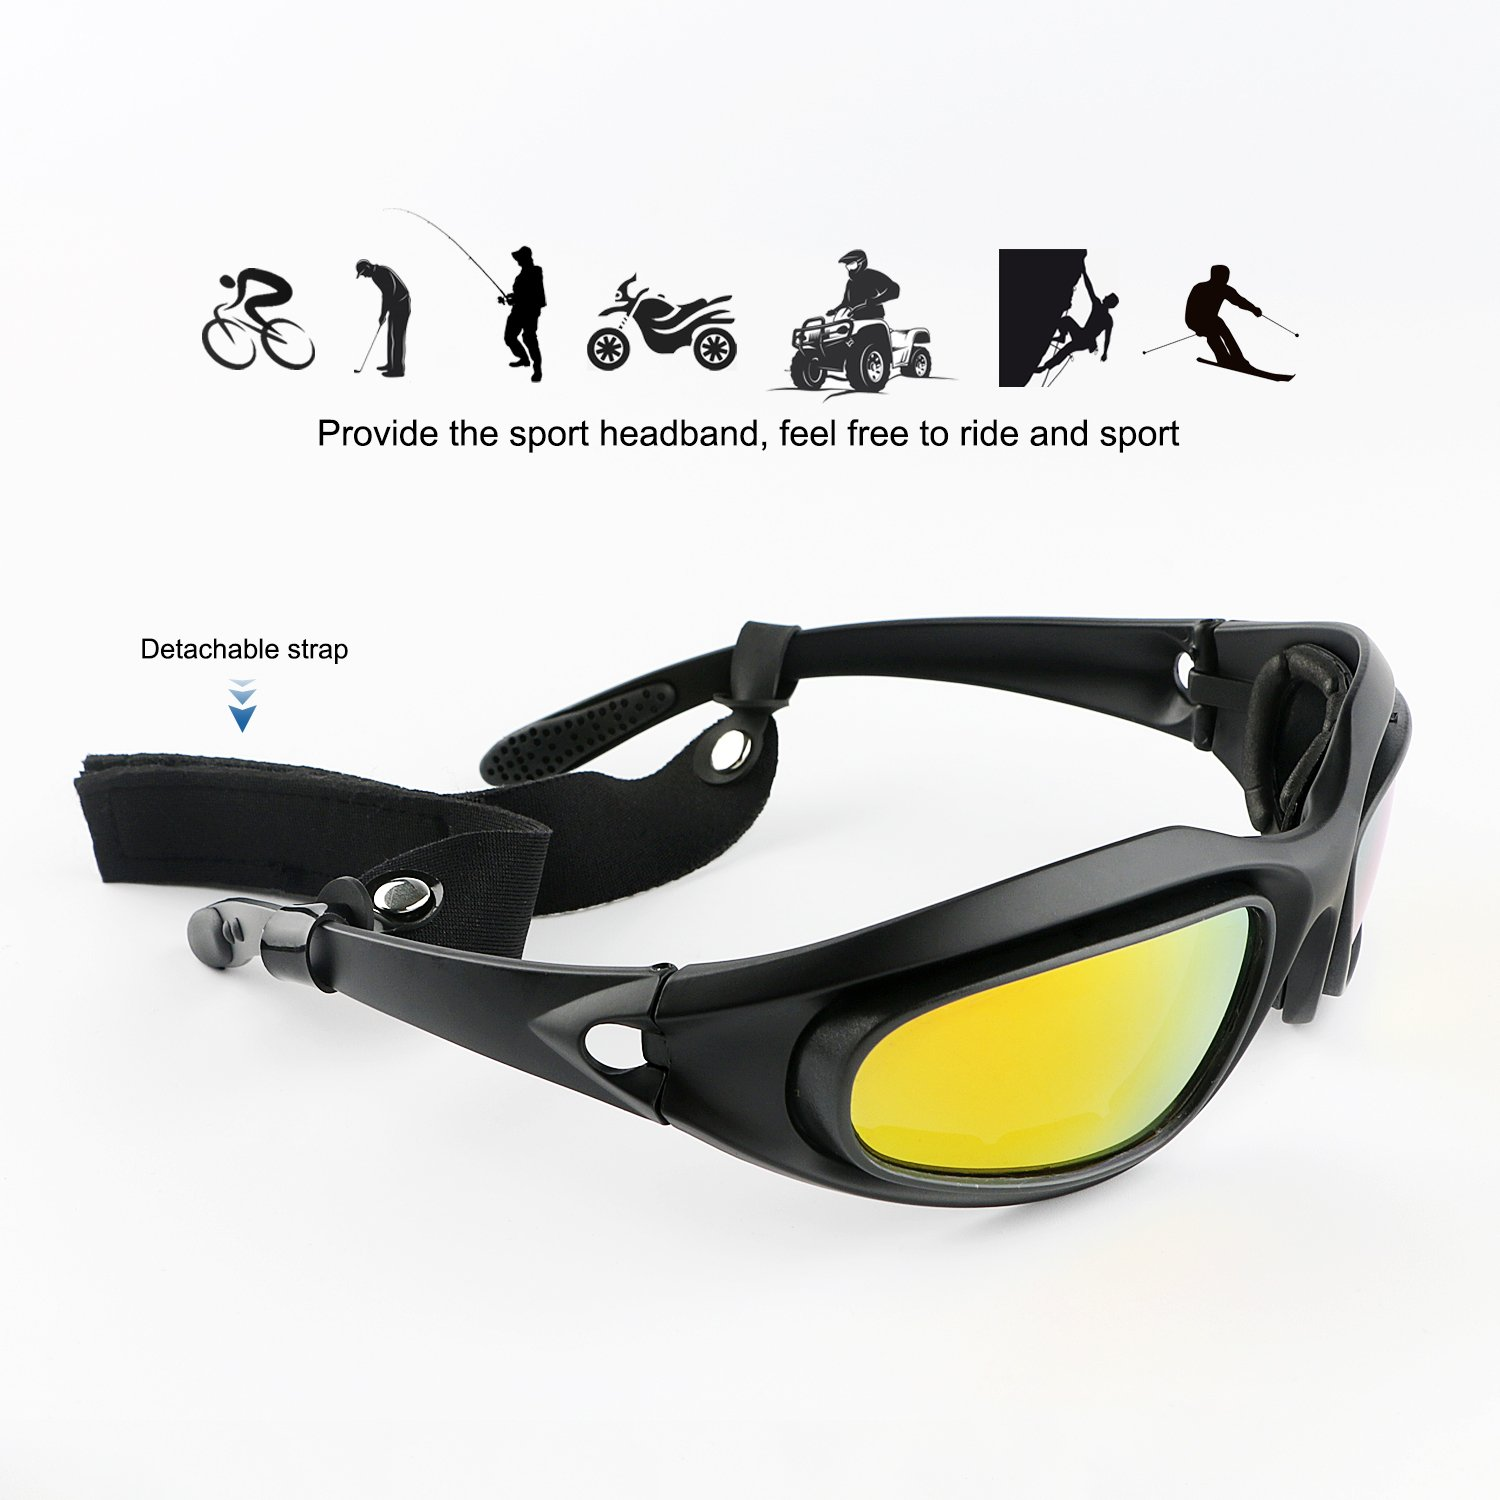 a8e18db7421 Tongshop Polarized Motorcycle Riding Glasses UV400 Bicycle Safety Goggles  Eyes protection Black Frame with 4 Pairs Lenses Come with a Balaclava  Tactical ...